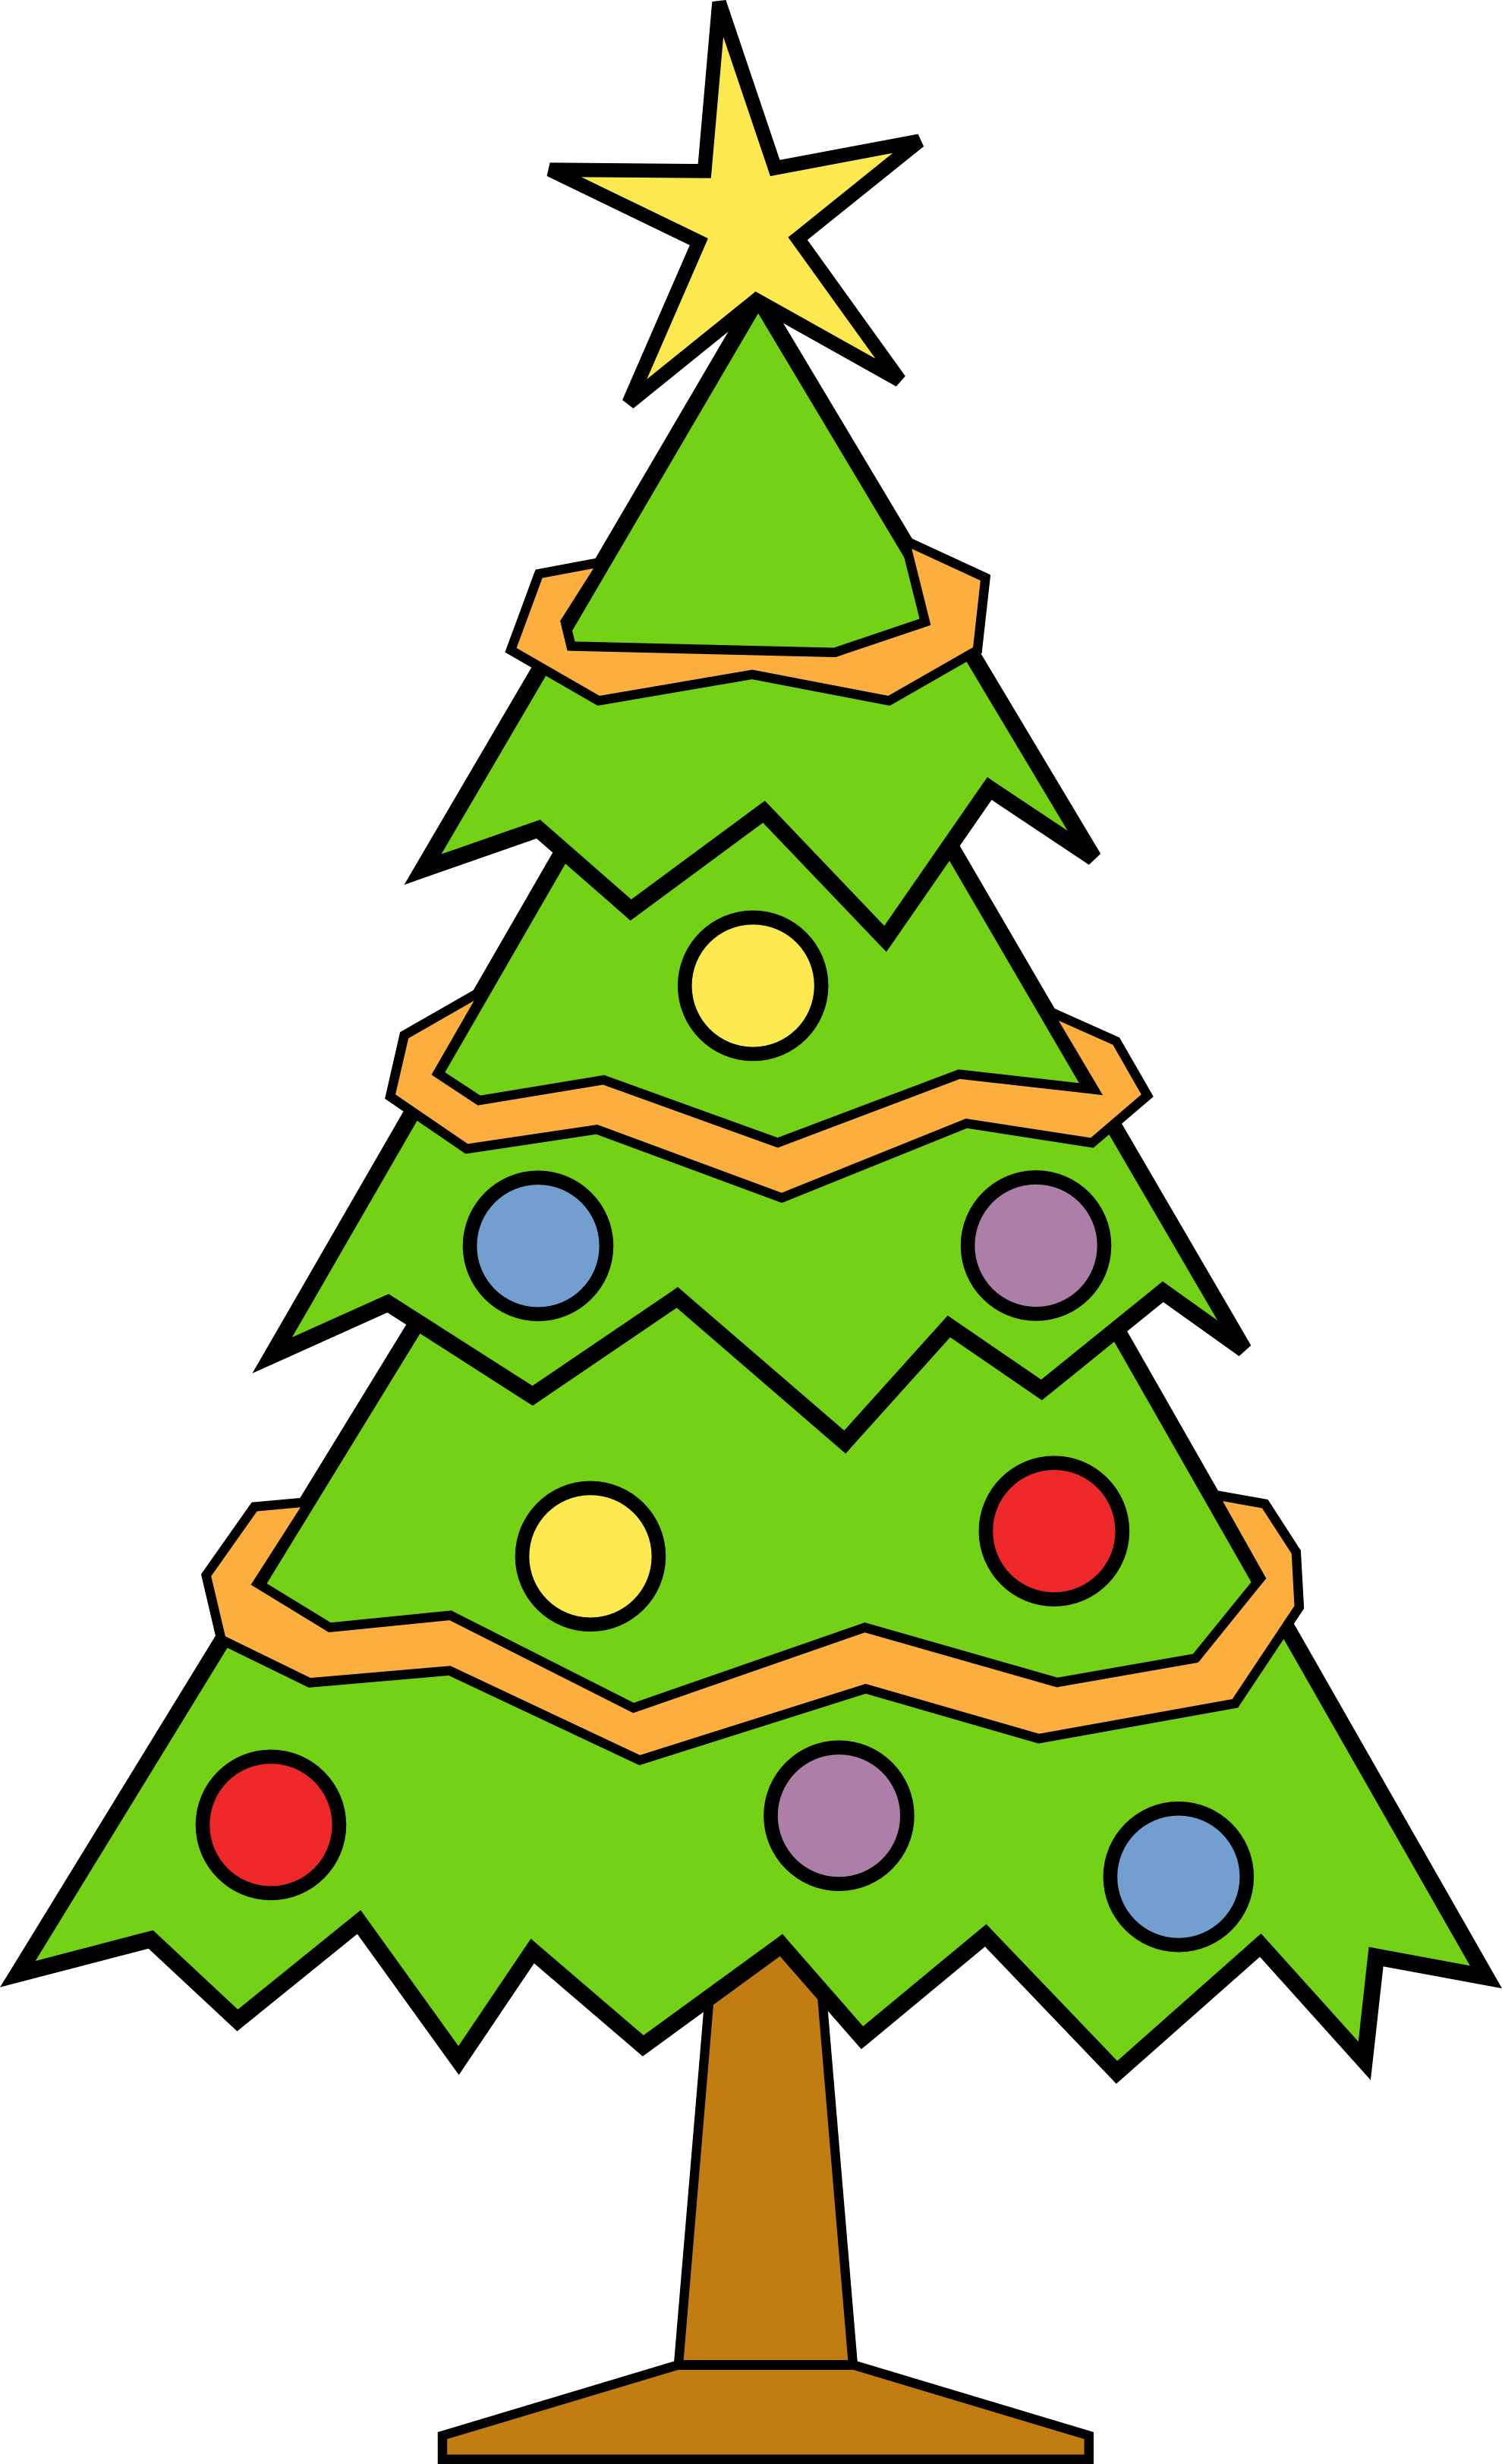 Christmas Tree clipart #3, Download drawings